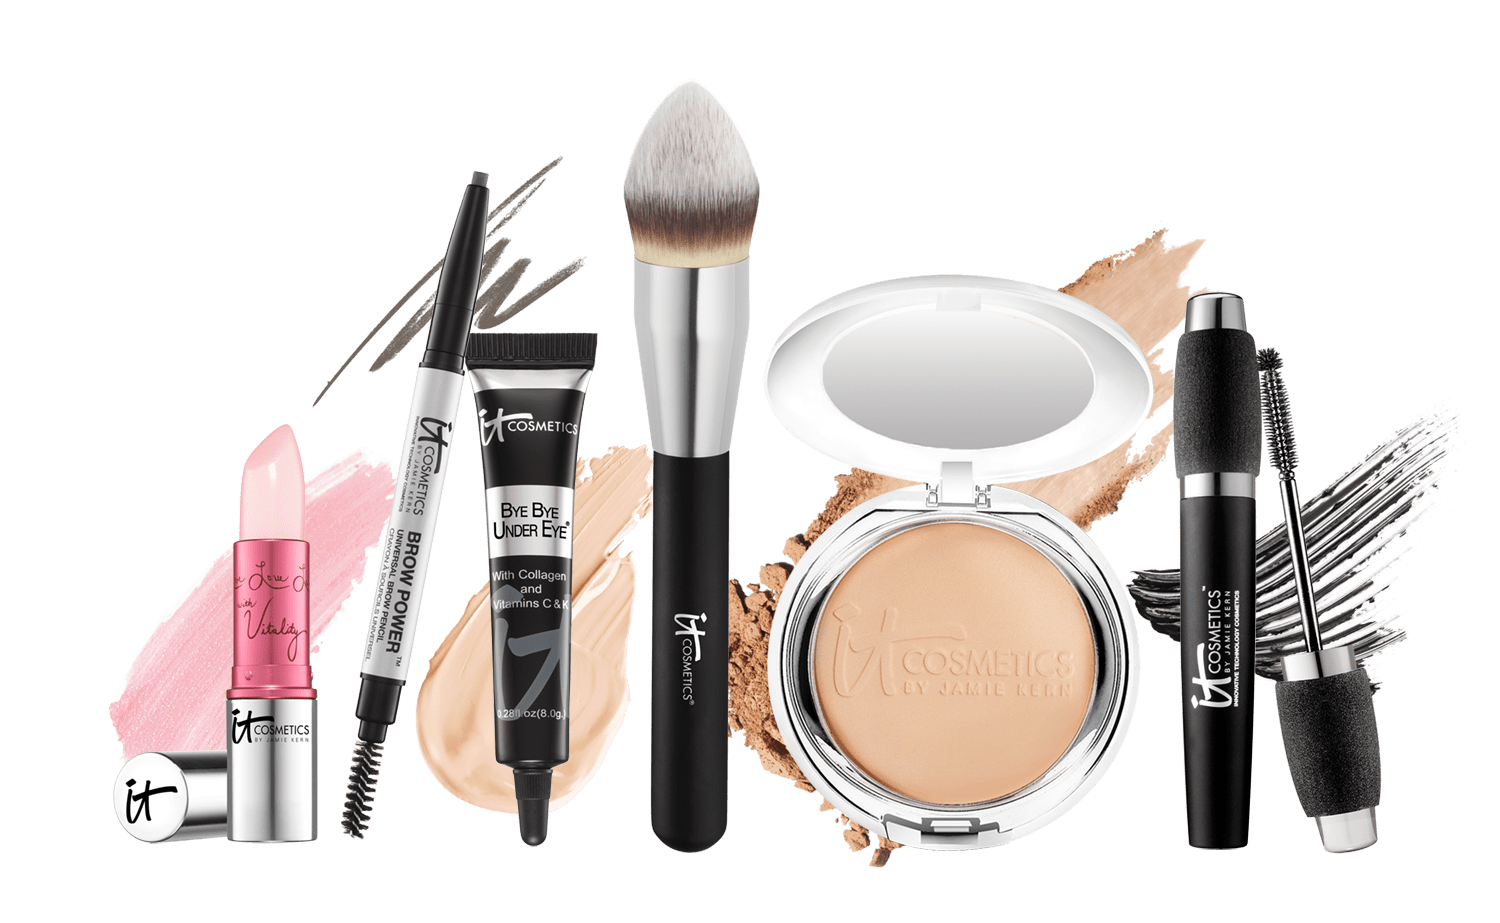 vector free stock Makeup clipart personal care product. Kit transparent png stickpng.